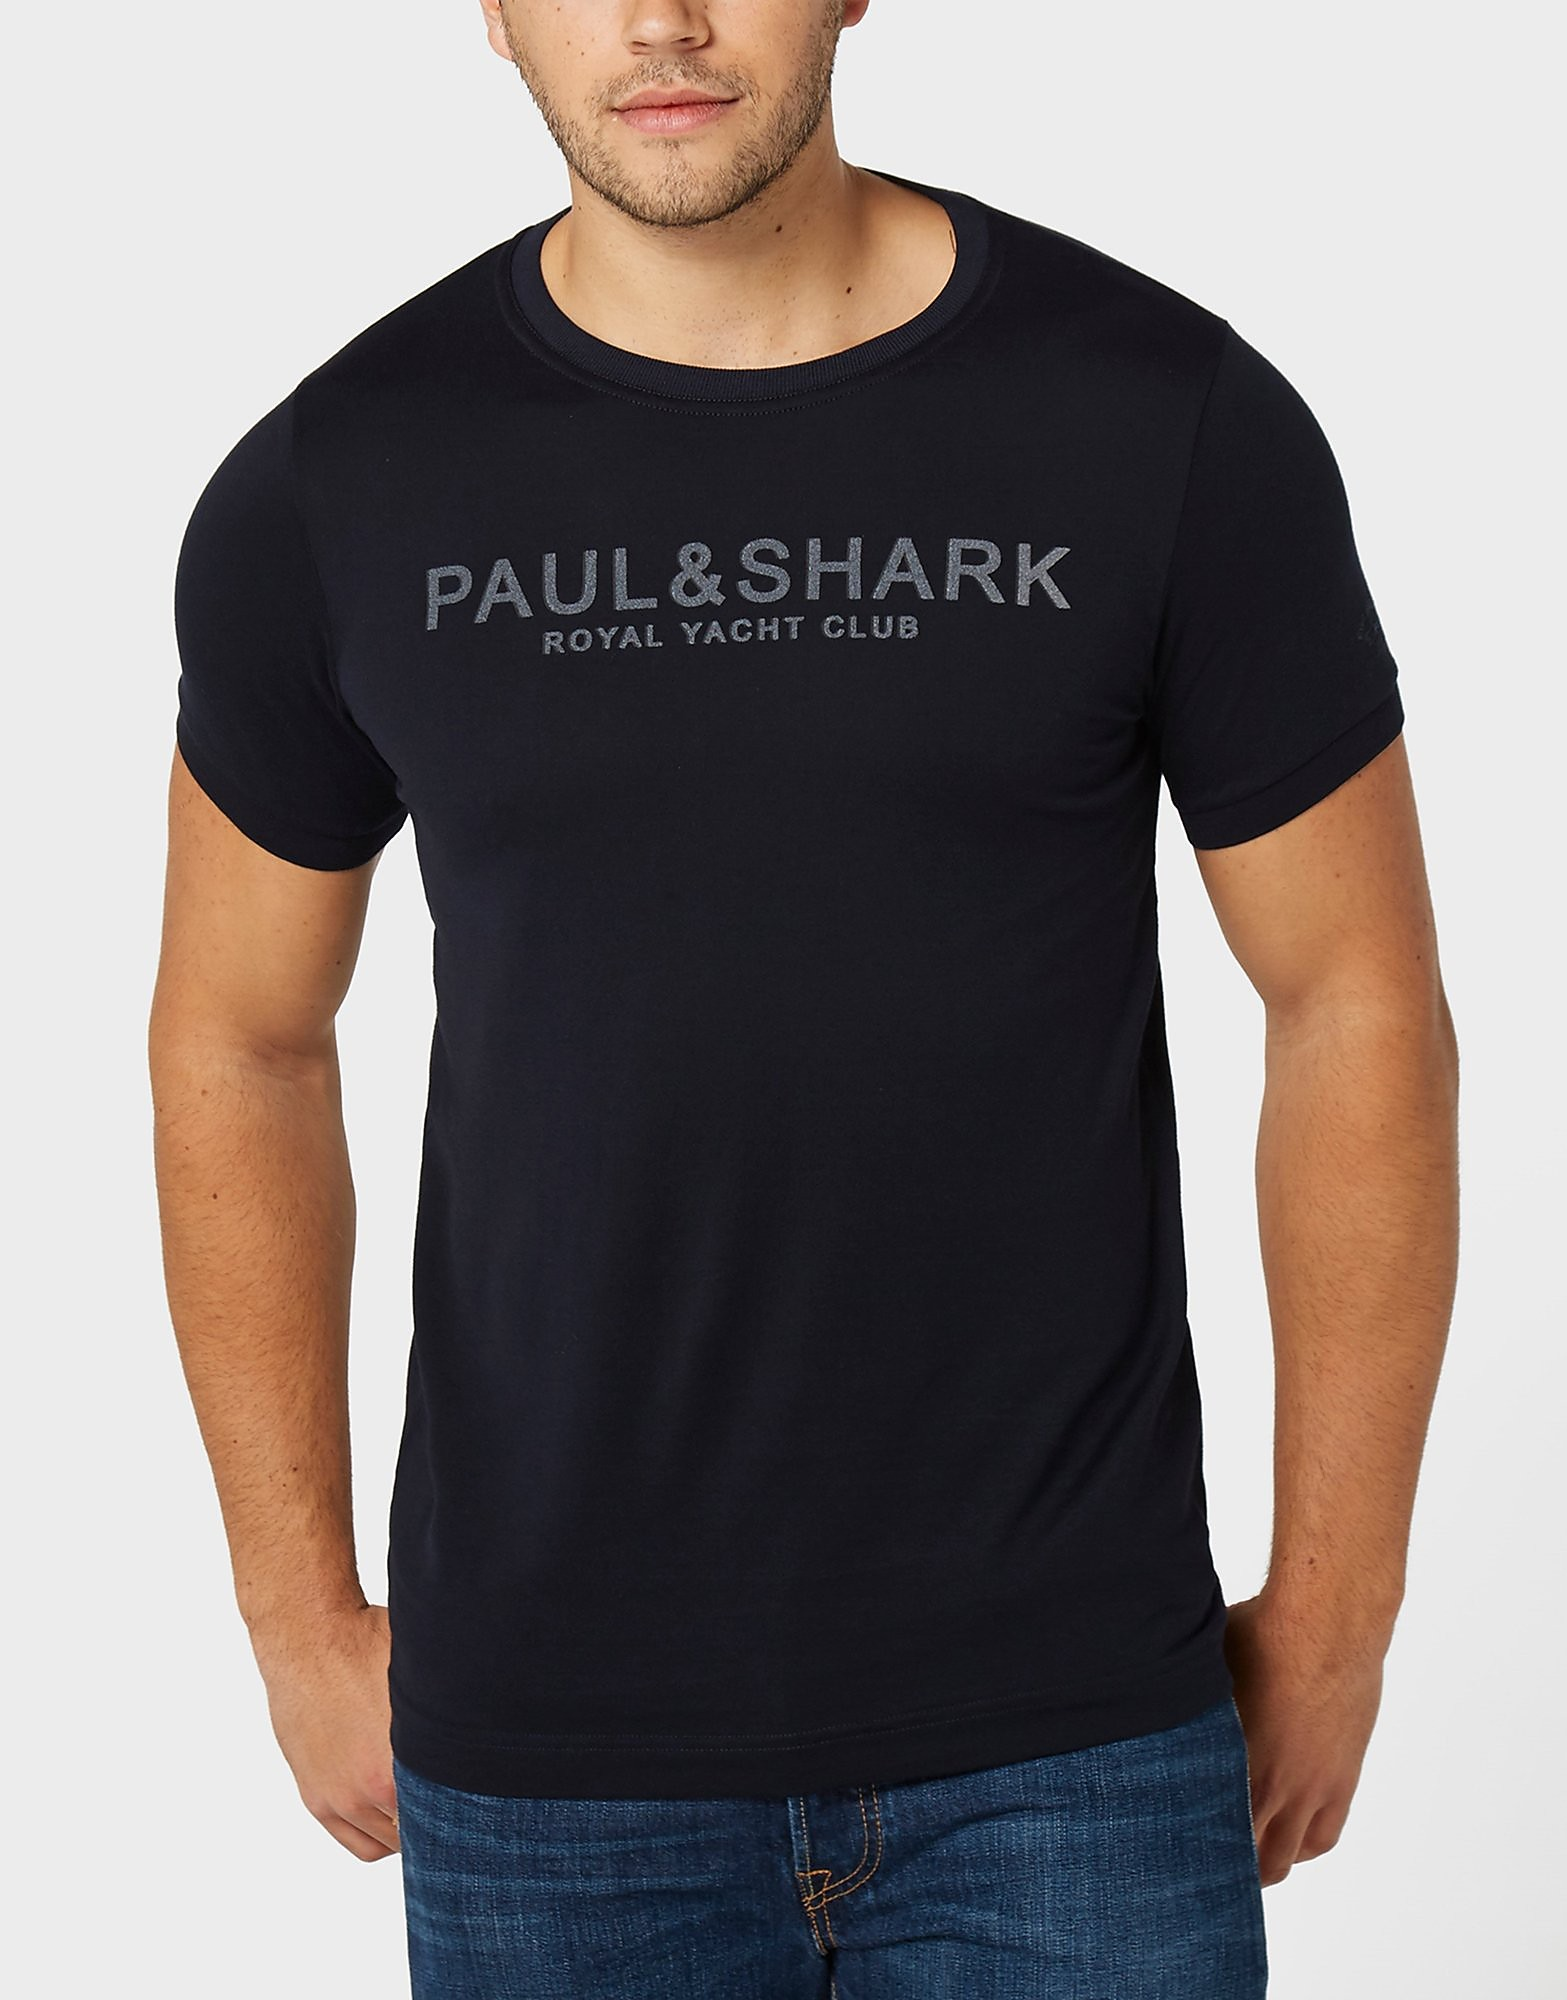 Paul and Shark Yacht Club T-Shirt